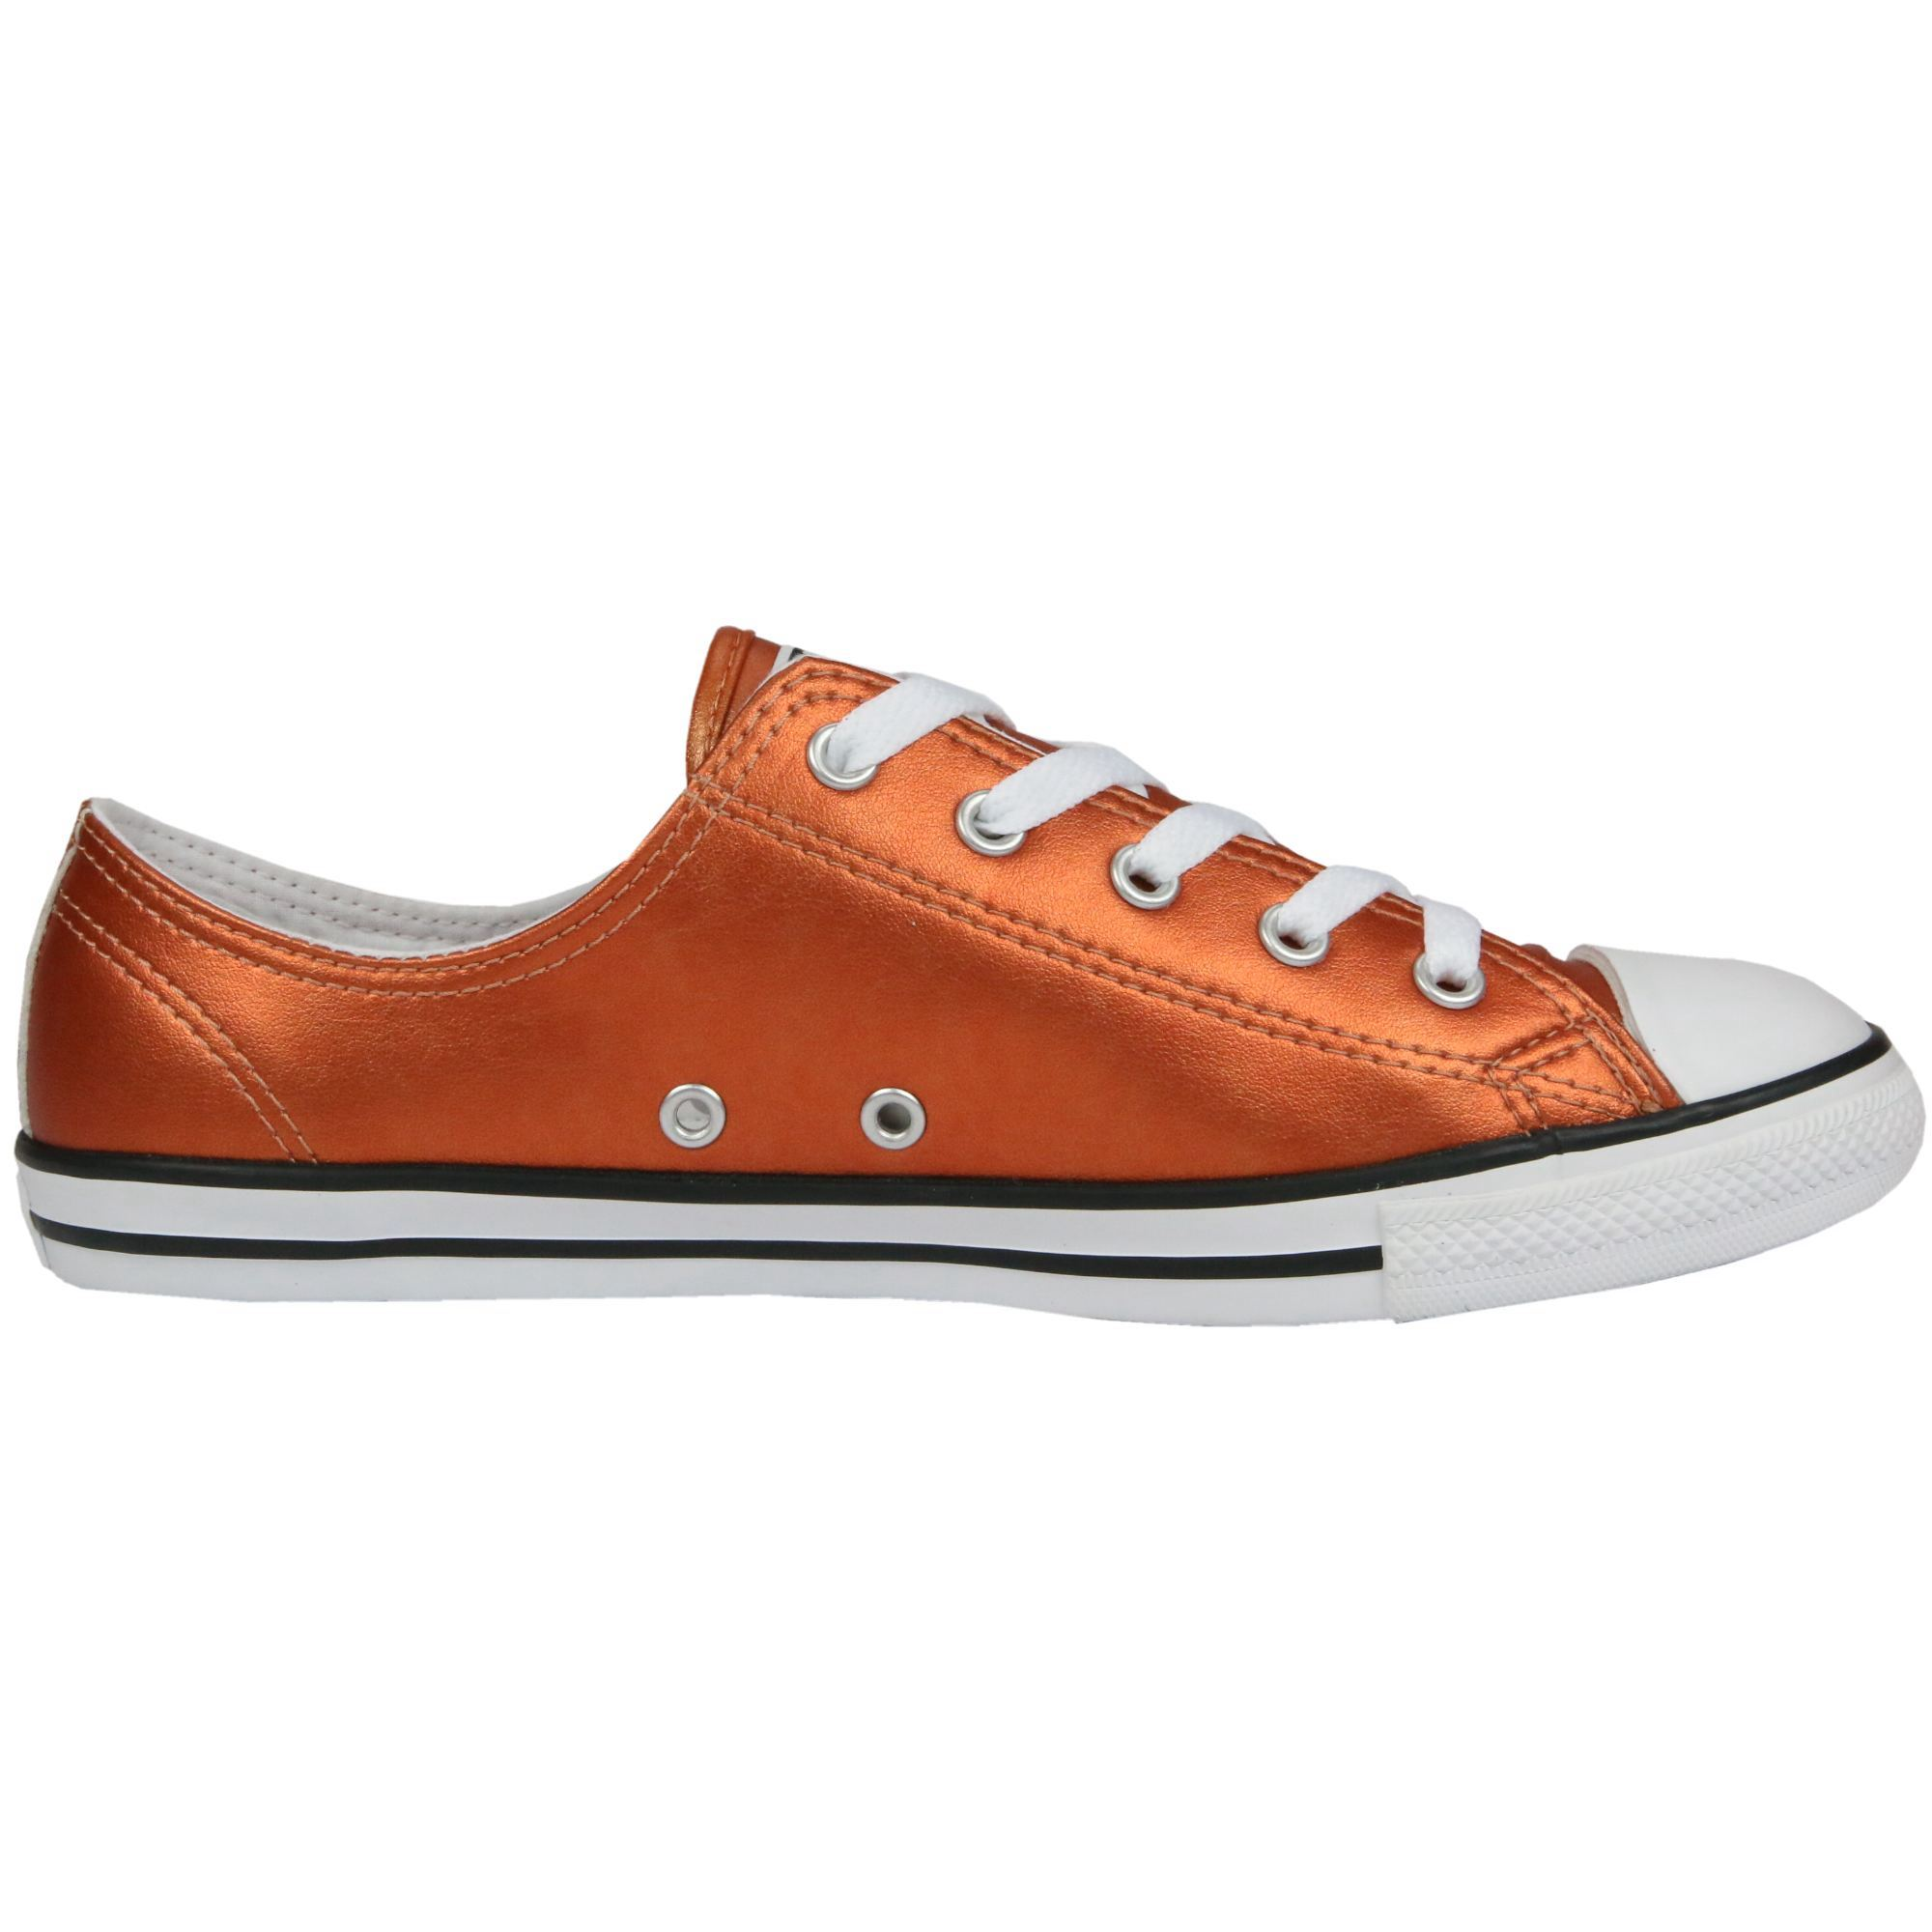 da7430280 ... Converse Chuck Taylor All Star dainty Ox Leather zapatos zapatillas  cuero genuino damas ...